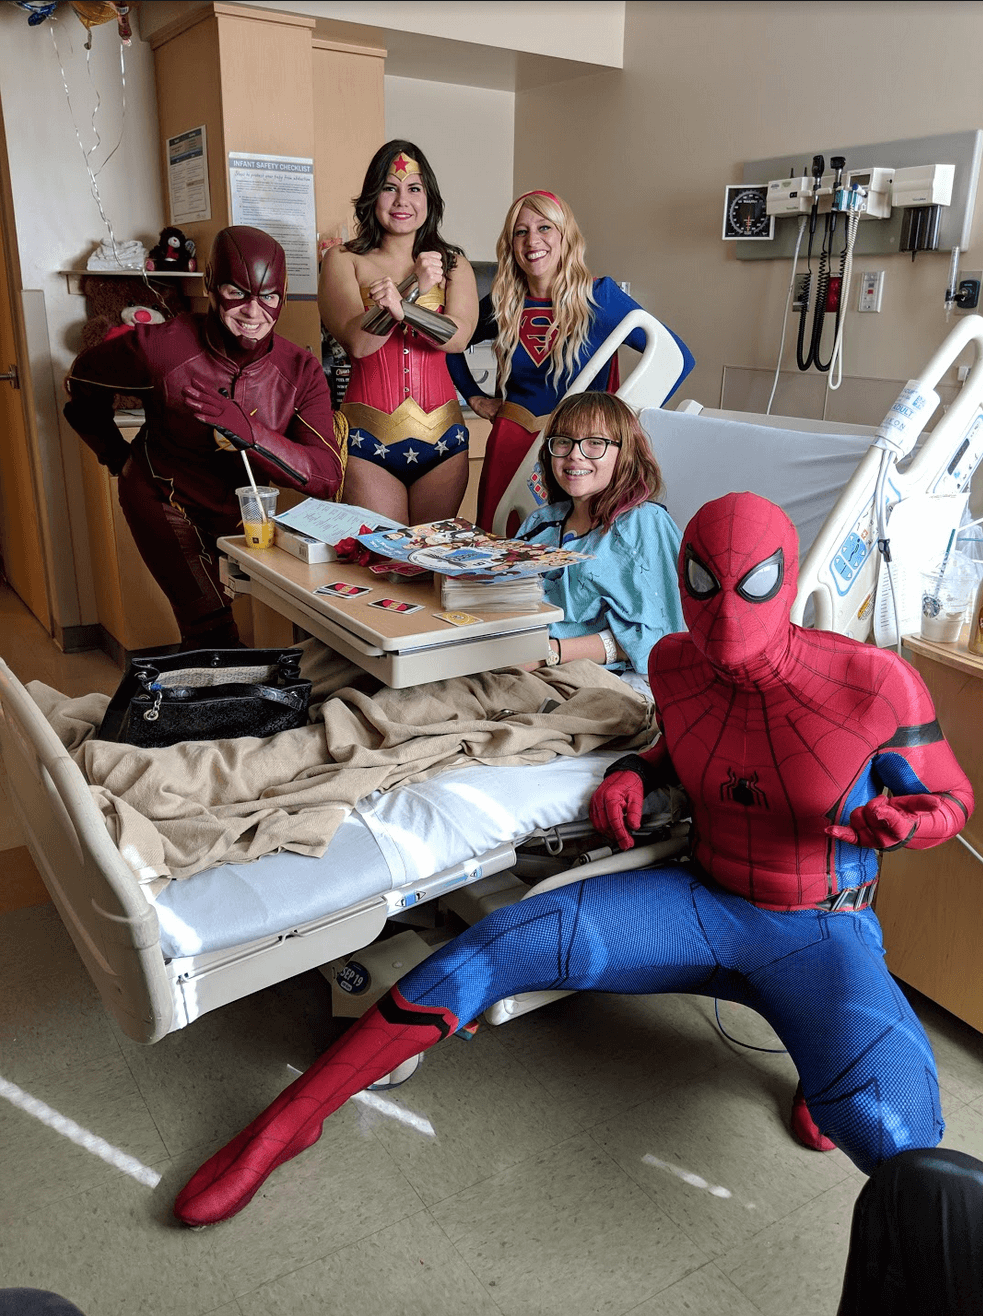 Critical Care Comics visit at a Hospital